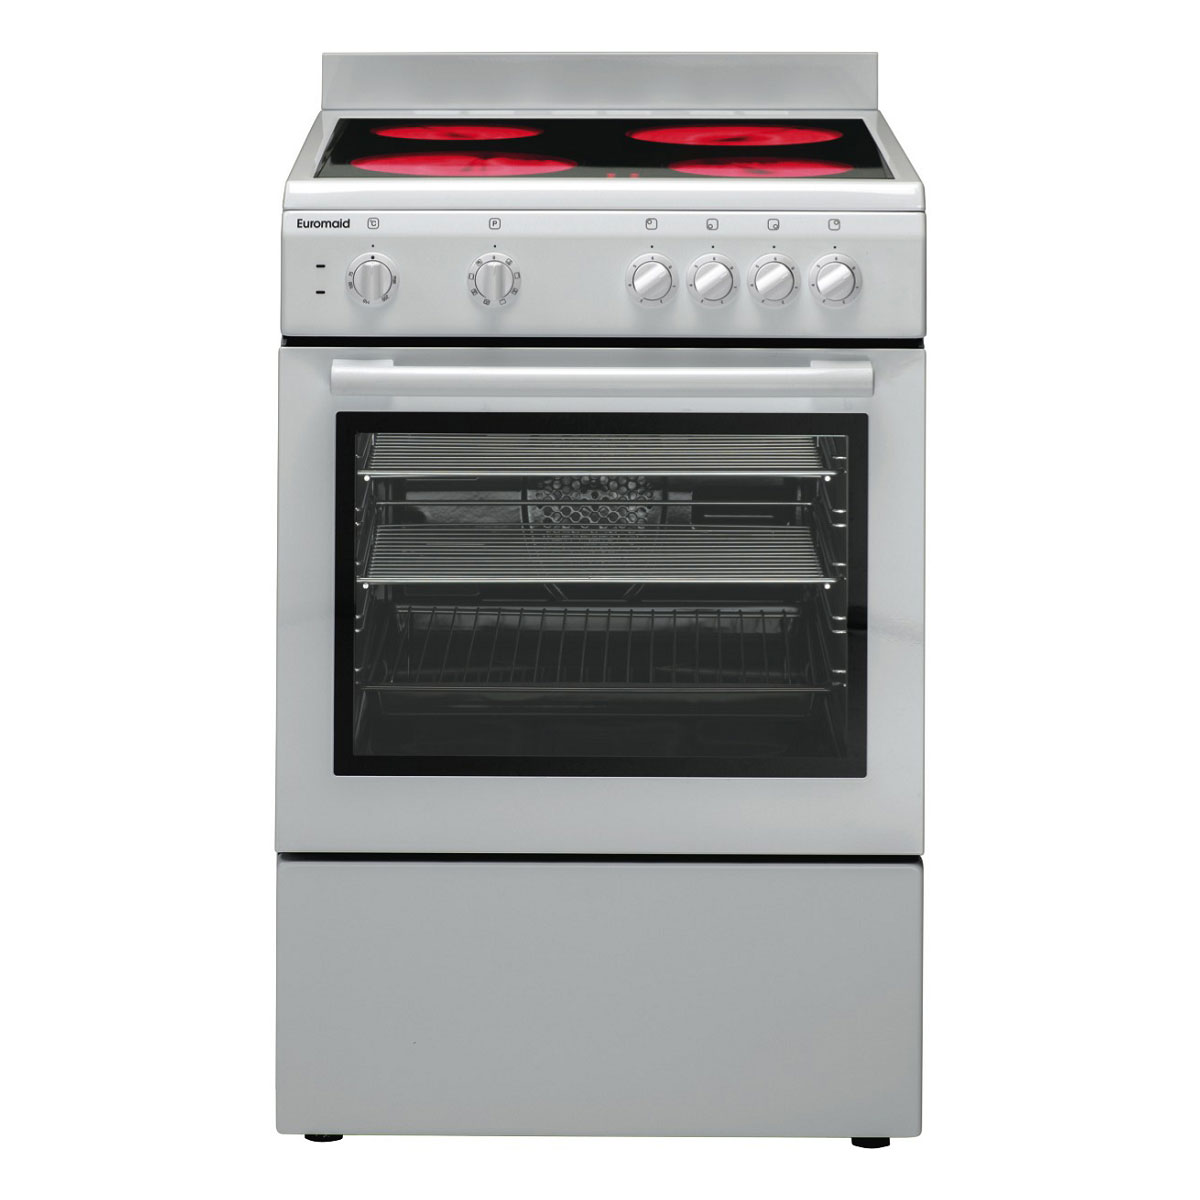 Euromaid CW60 Freestanding Electric Oven/Stove